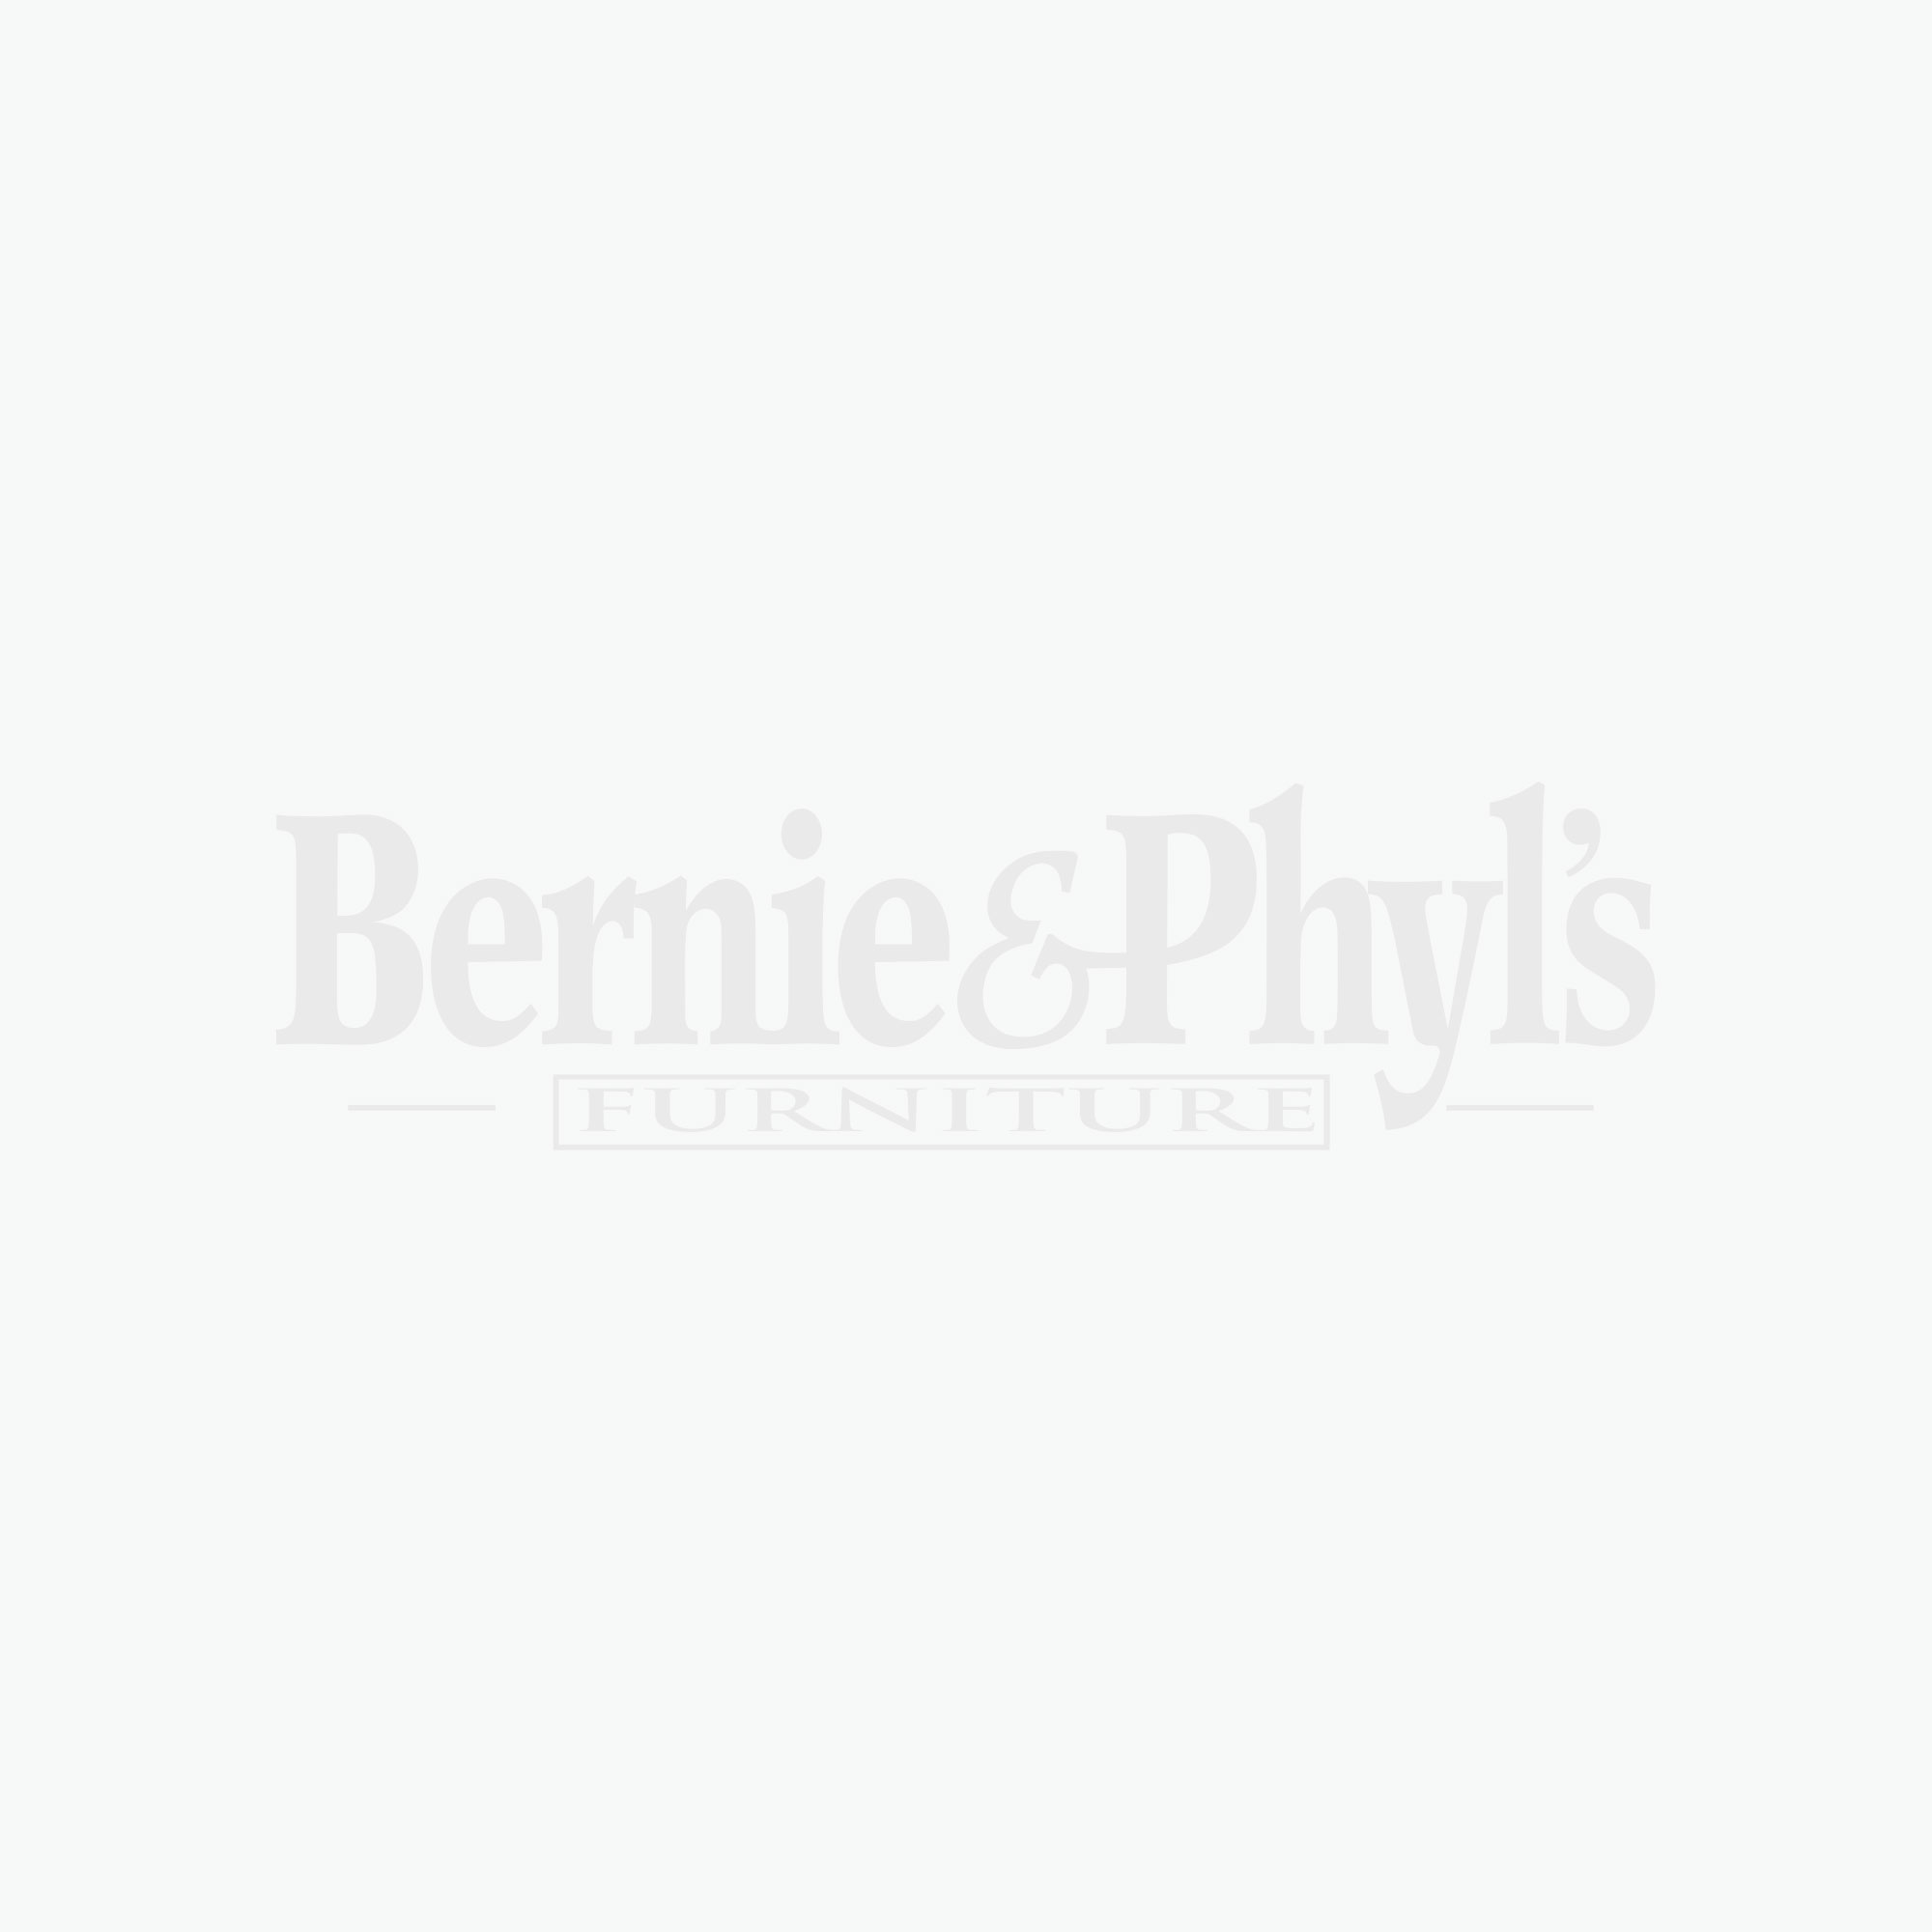 Adirondack Dining Table   Bernie U0026 Phylu0027s Furniture   By Warehouse M  Furniture